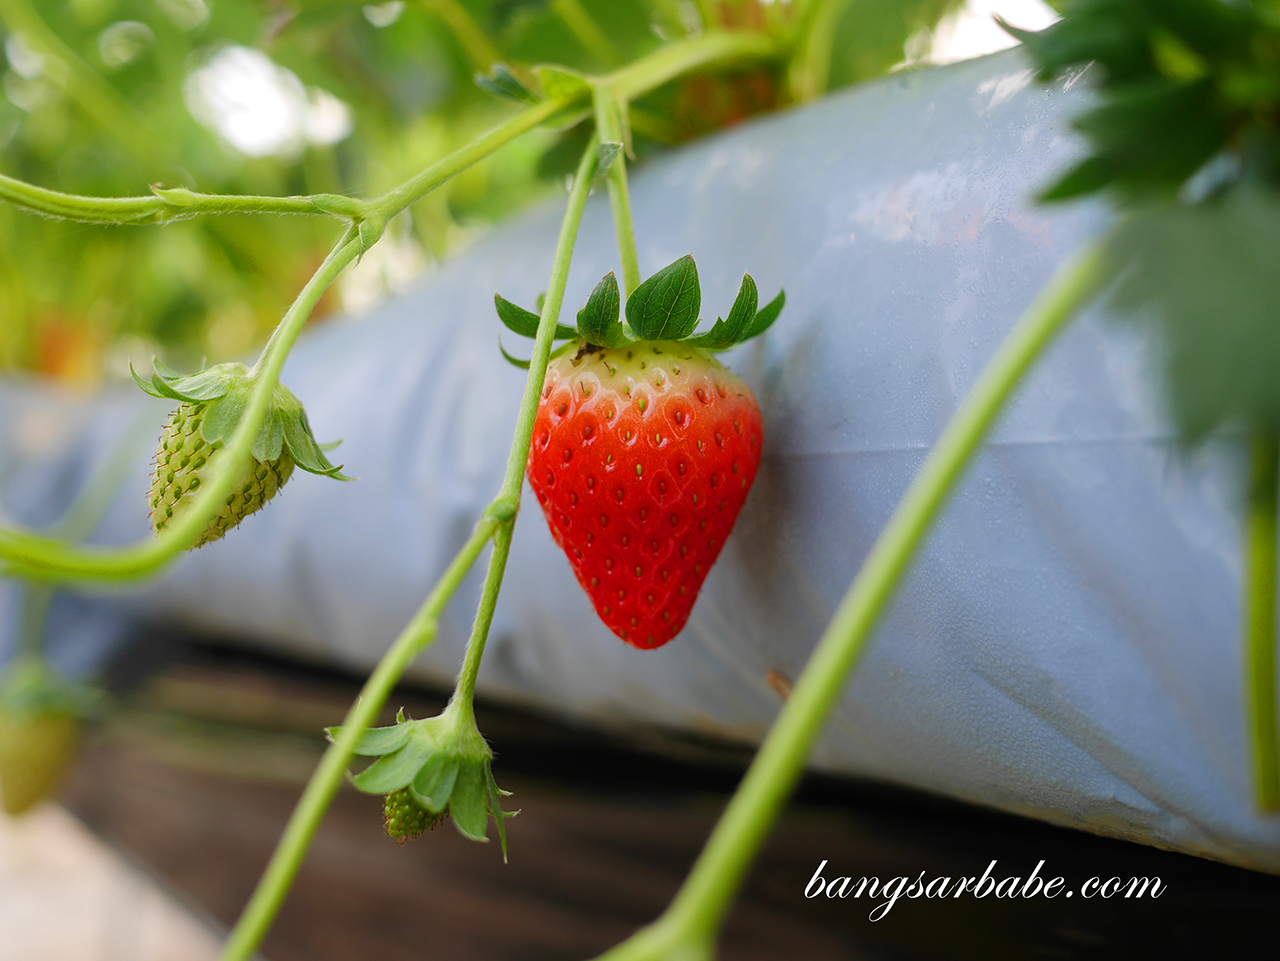 Strawberry at Ichigo Farm